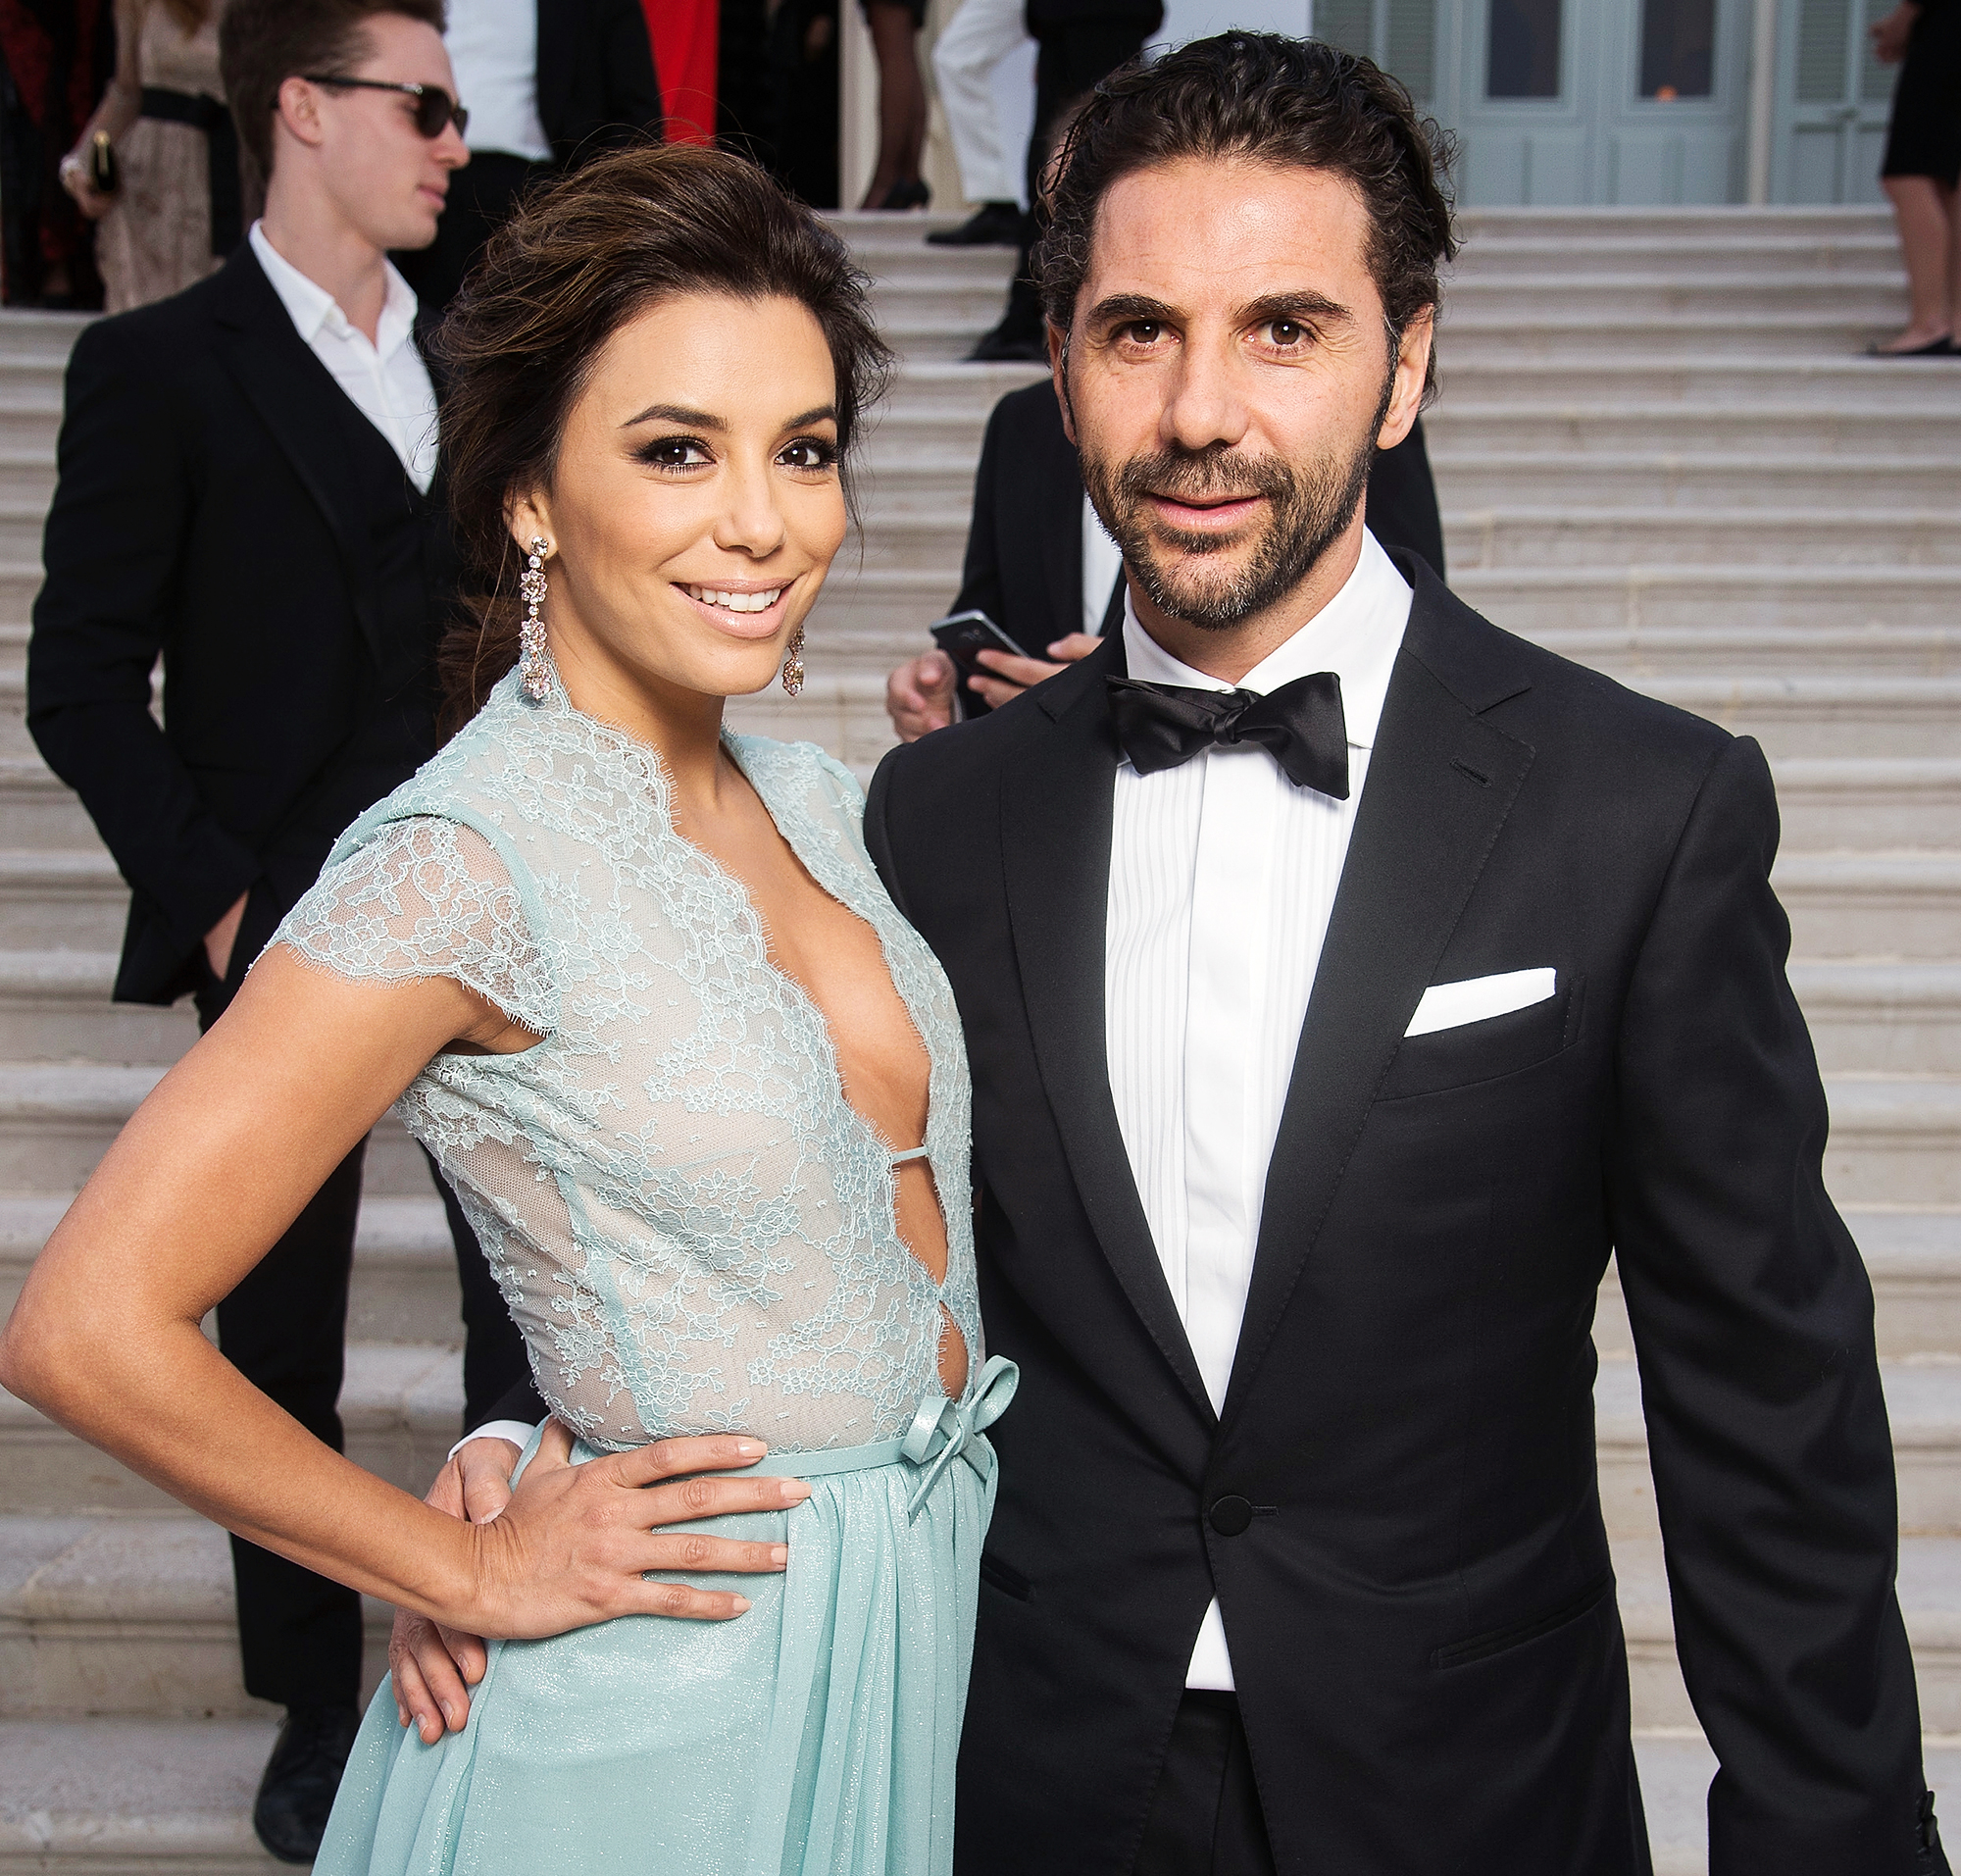 d9ff5c4ed7d6 Eva Longoria Shares First Full Photo of Newborn Son Santiago